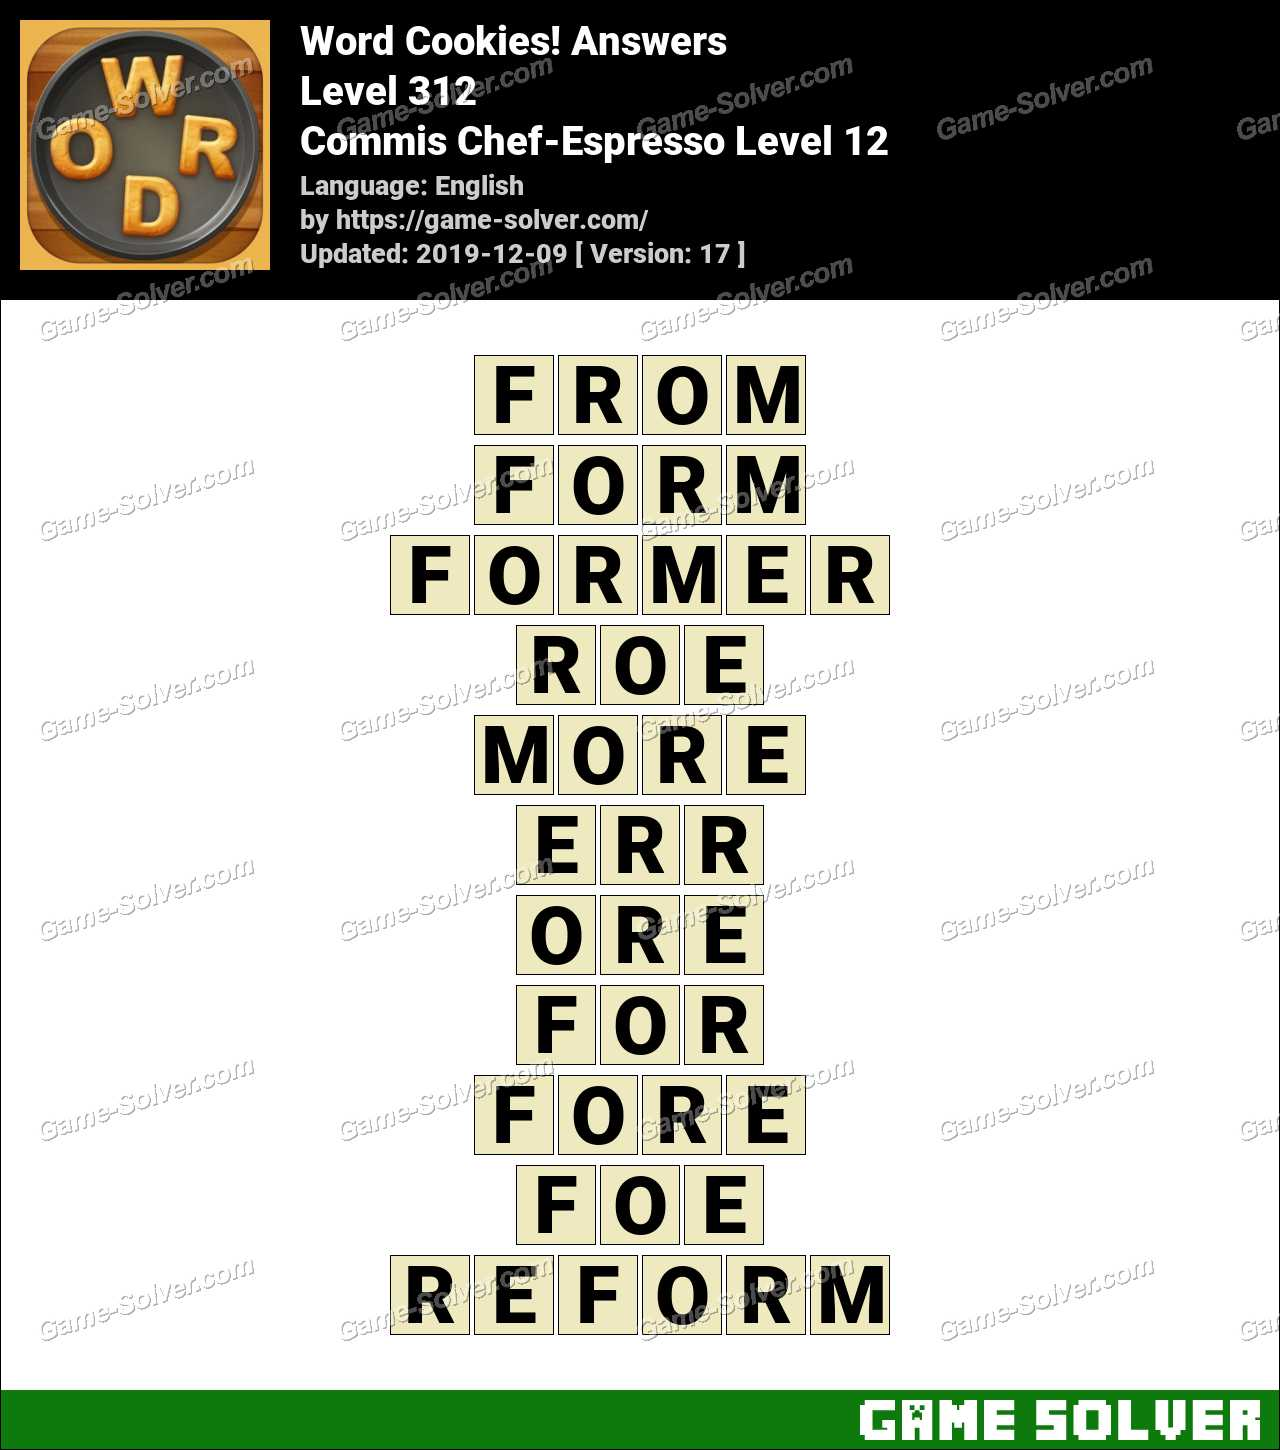 Word Cookies Commis Chef-Espresso Level 12 Answers